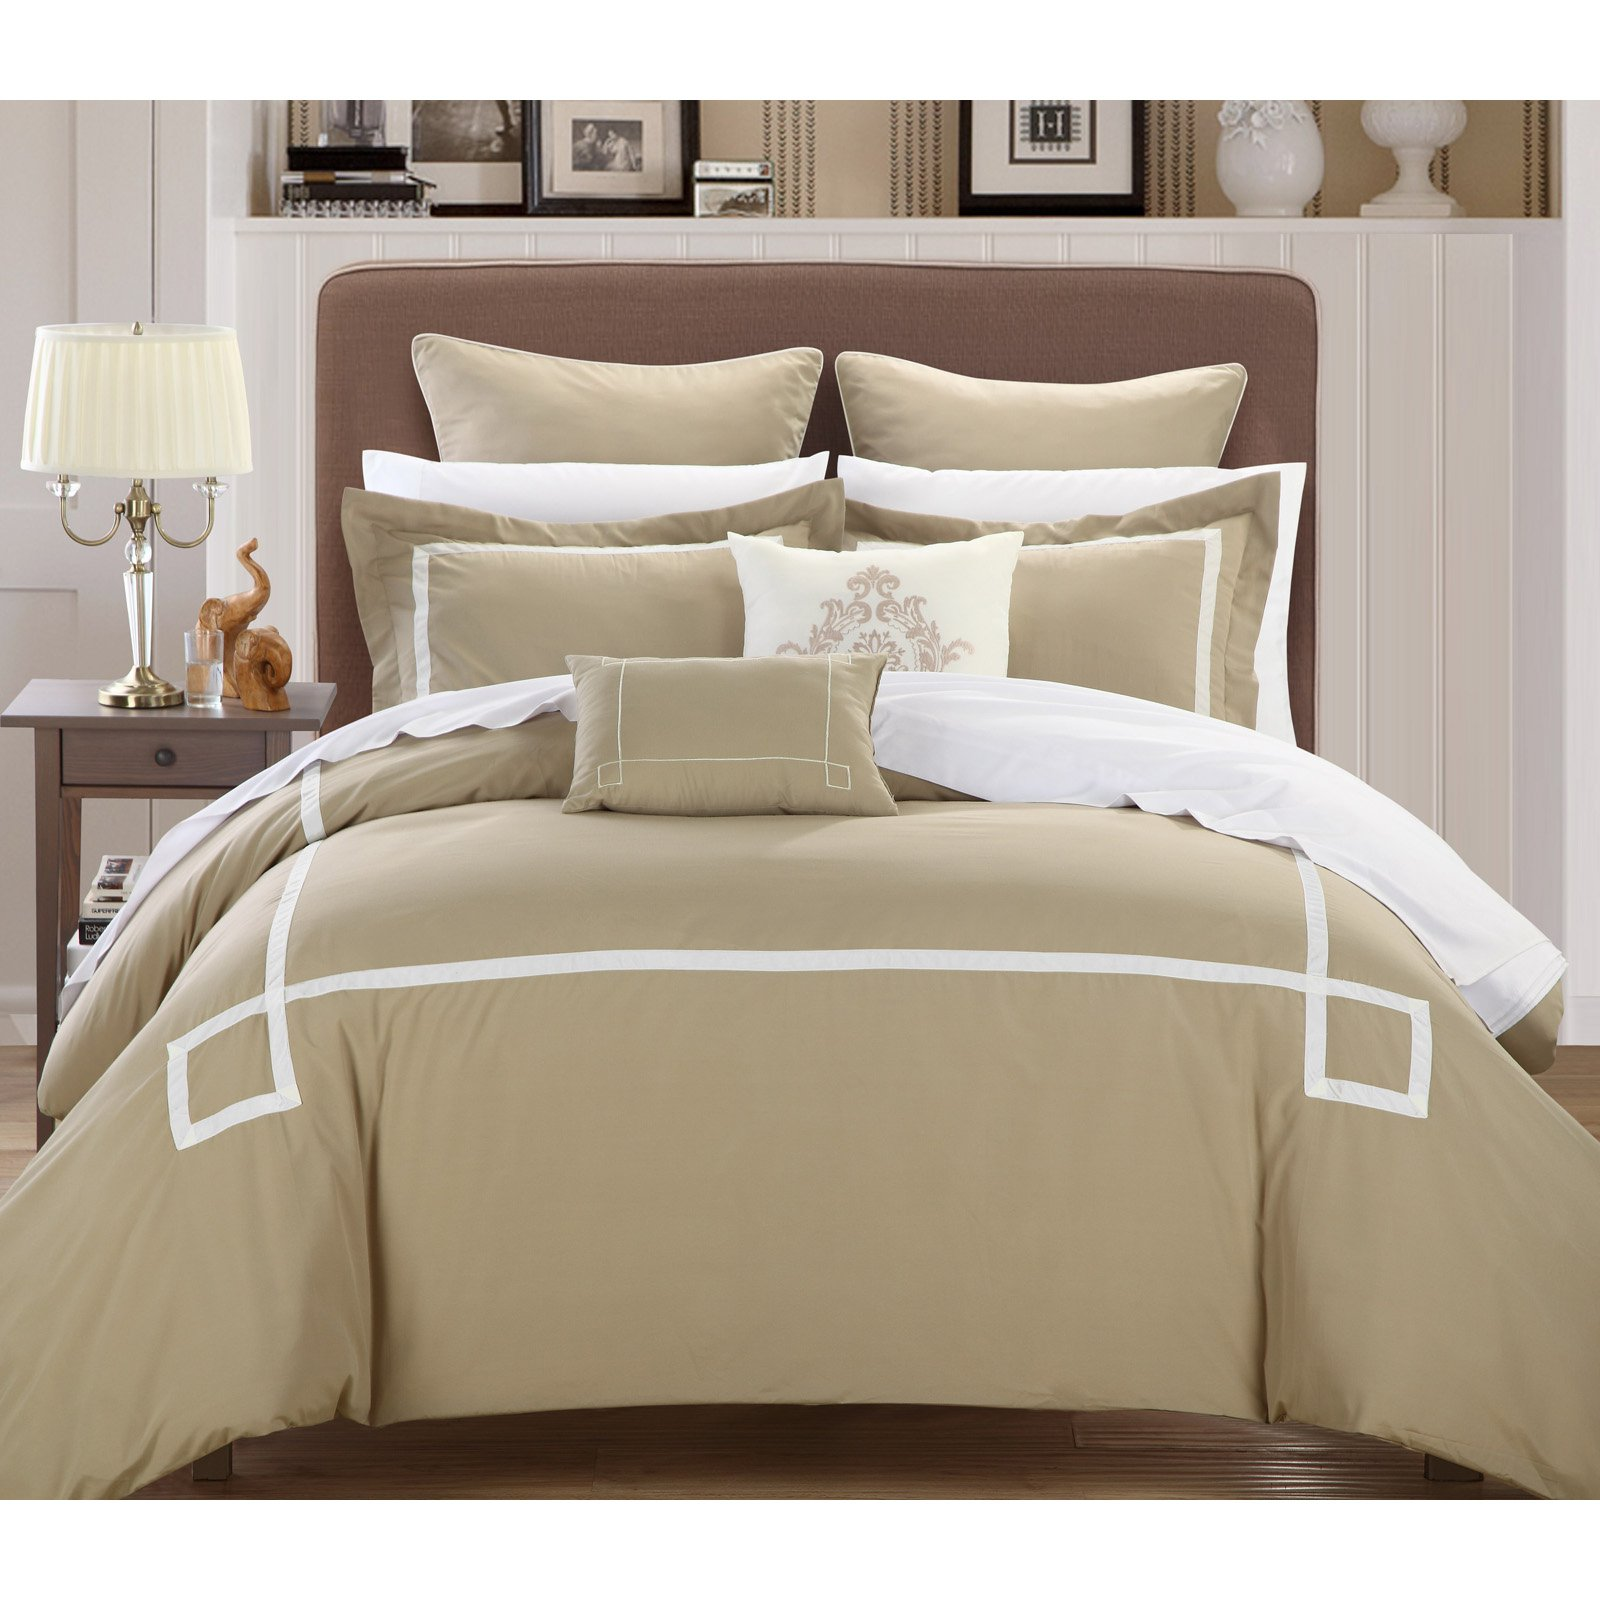 Chic Home Woodford 11 Piece Bed in a Bag Embroidered Comforter Set with 4 Piece Sheet Set